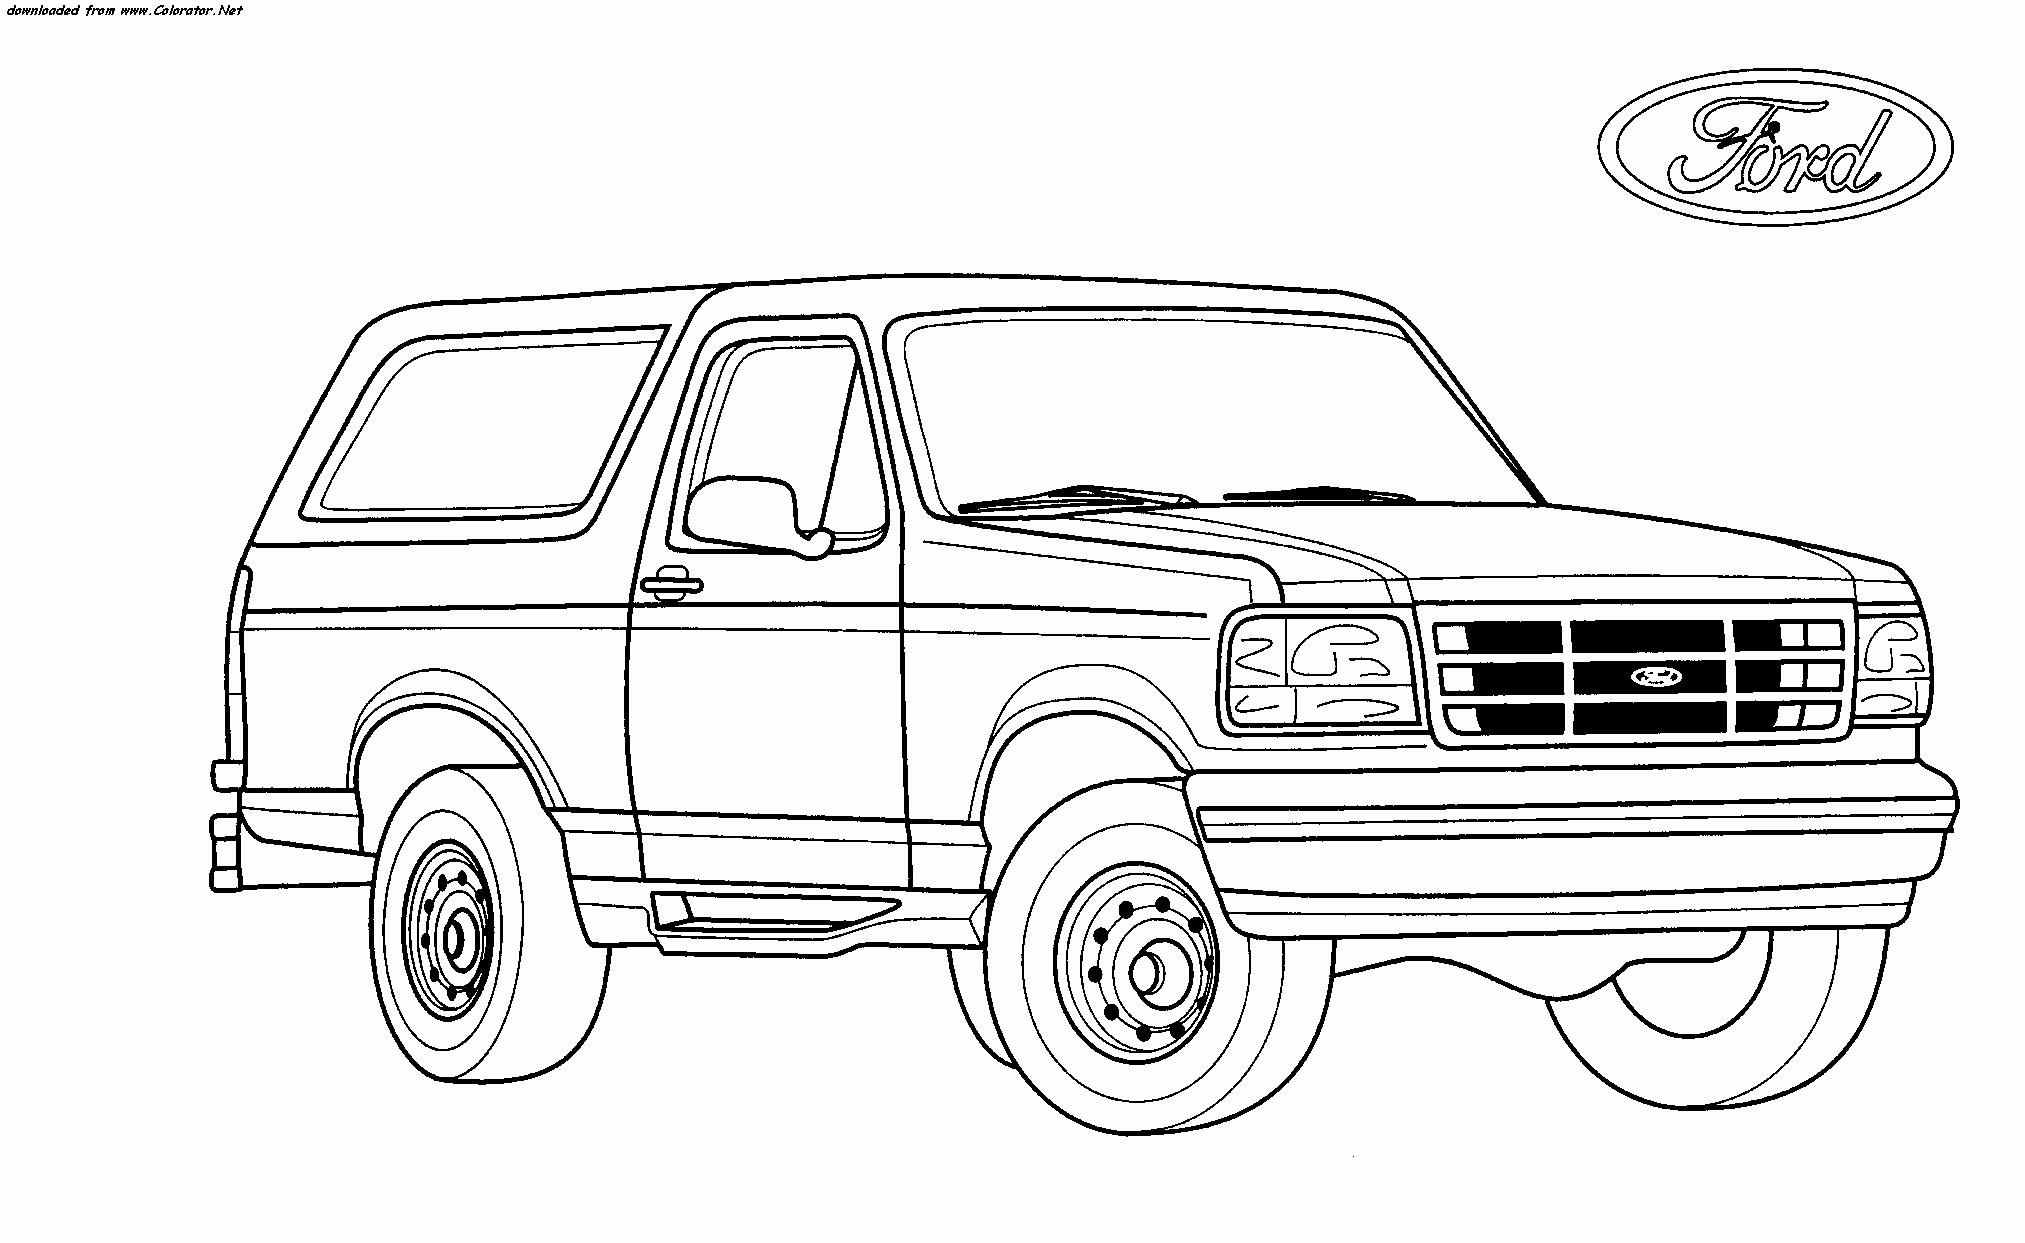 ford truck coloring pages Download-Ford Truck Coloring Pages Fresh Free ford Truck Coloring Pages ford F150 Coloring Pages 5-g